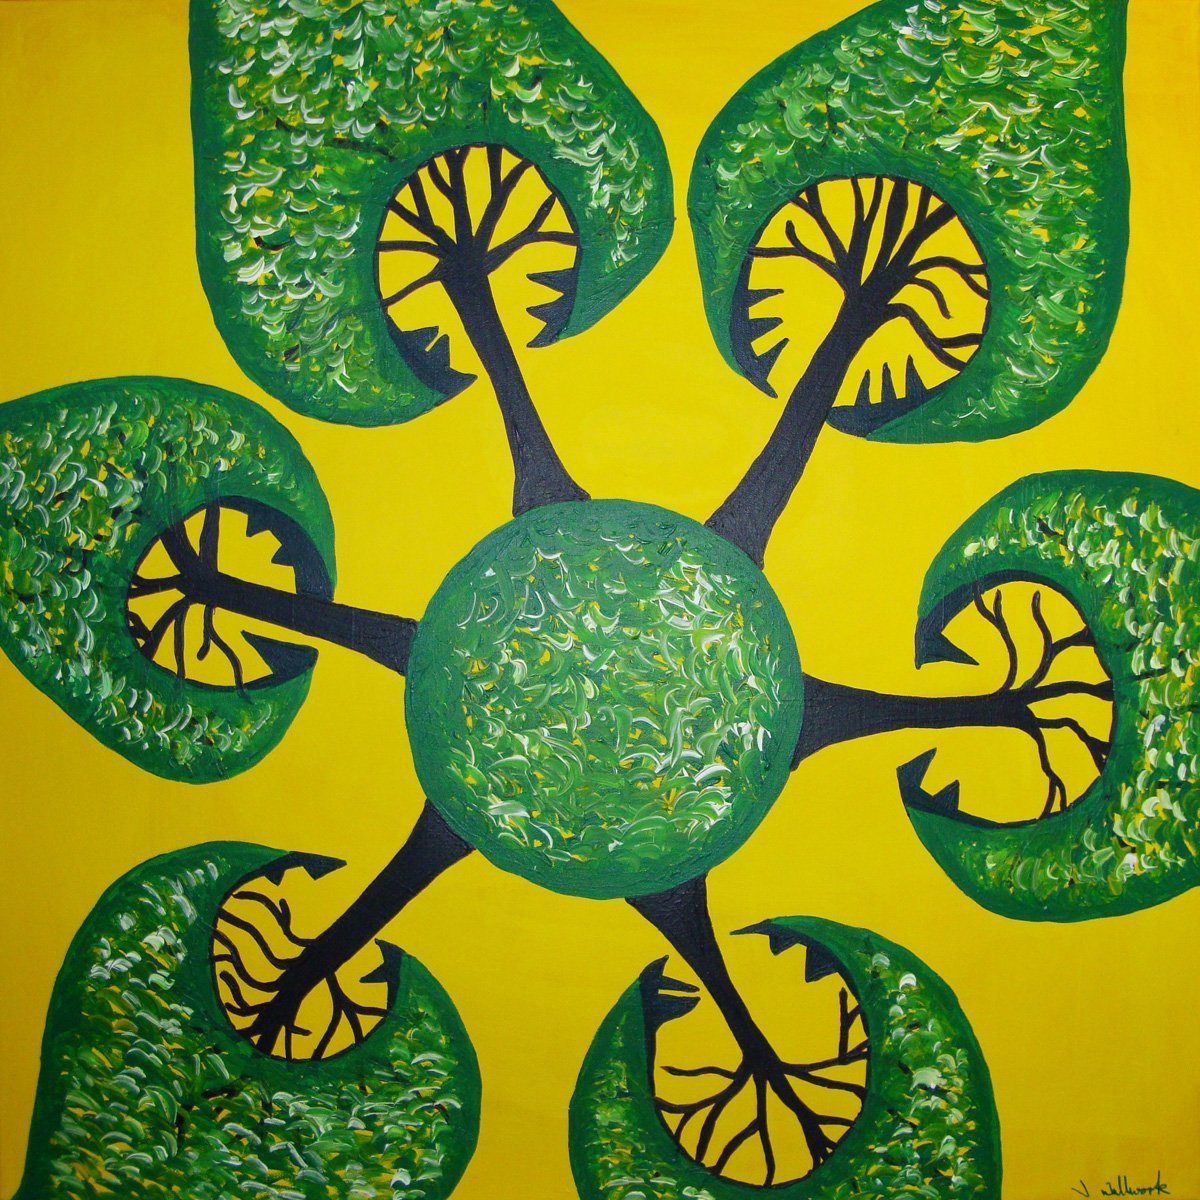 The image shows a piece of artwork by Jina Wallwork. It is a painting of trees. Stylistically this piece of artwork has links with expressionism and abstract art.